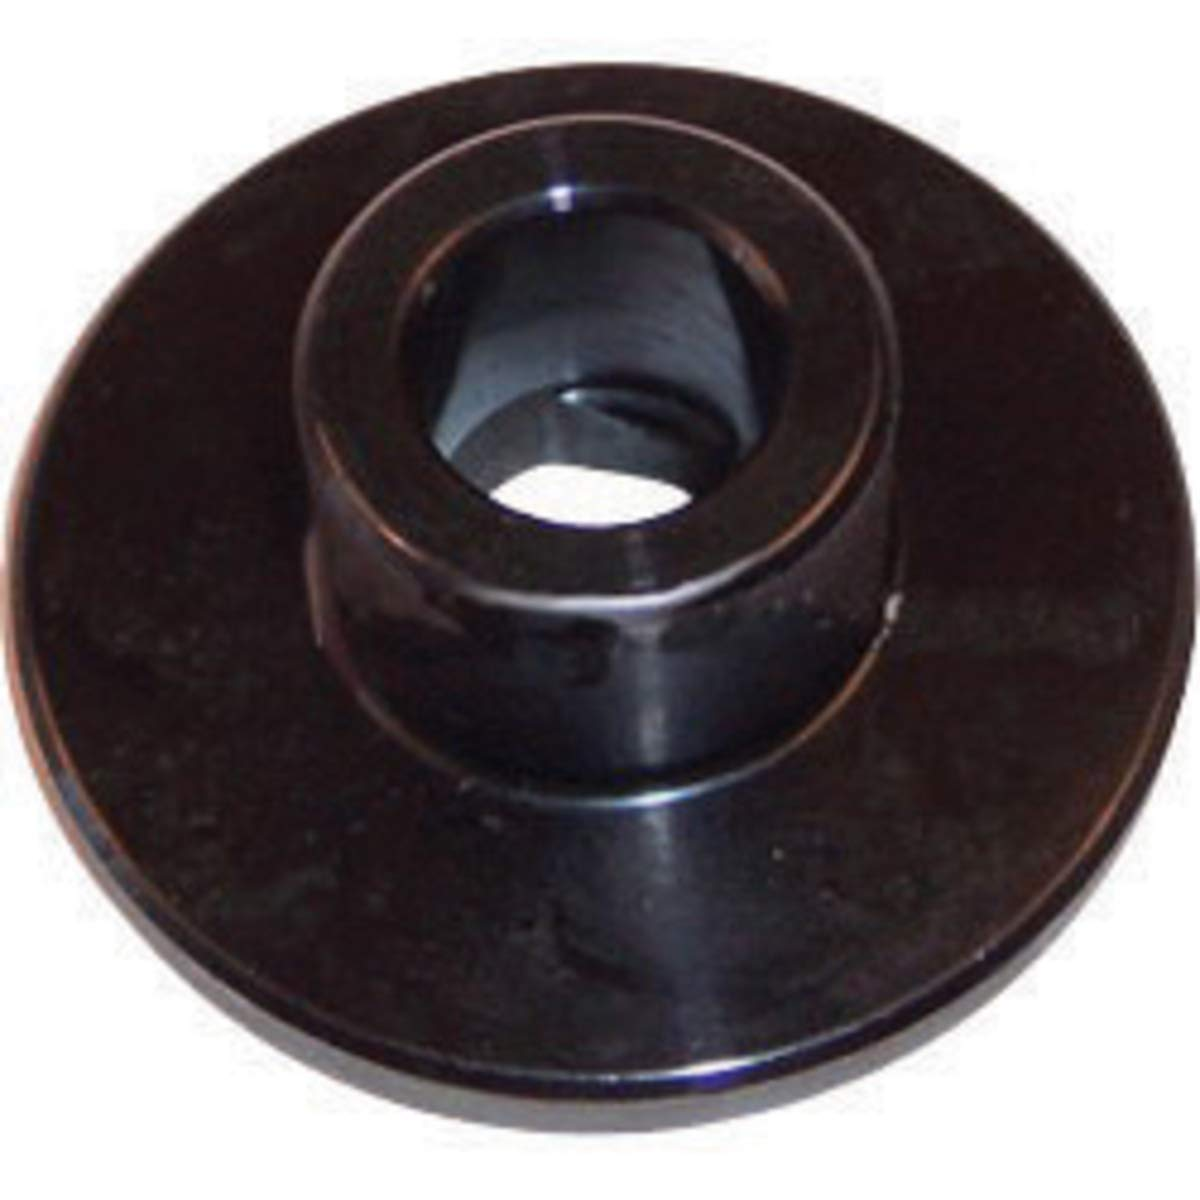 Milwaukee Inner Flange (For Use With 14'' Dry Cut Machine), Package Size: 1 Each